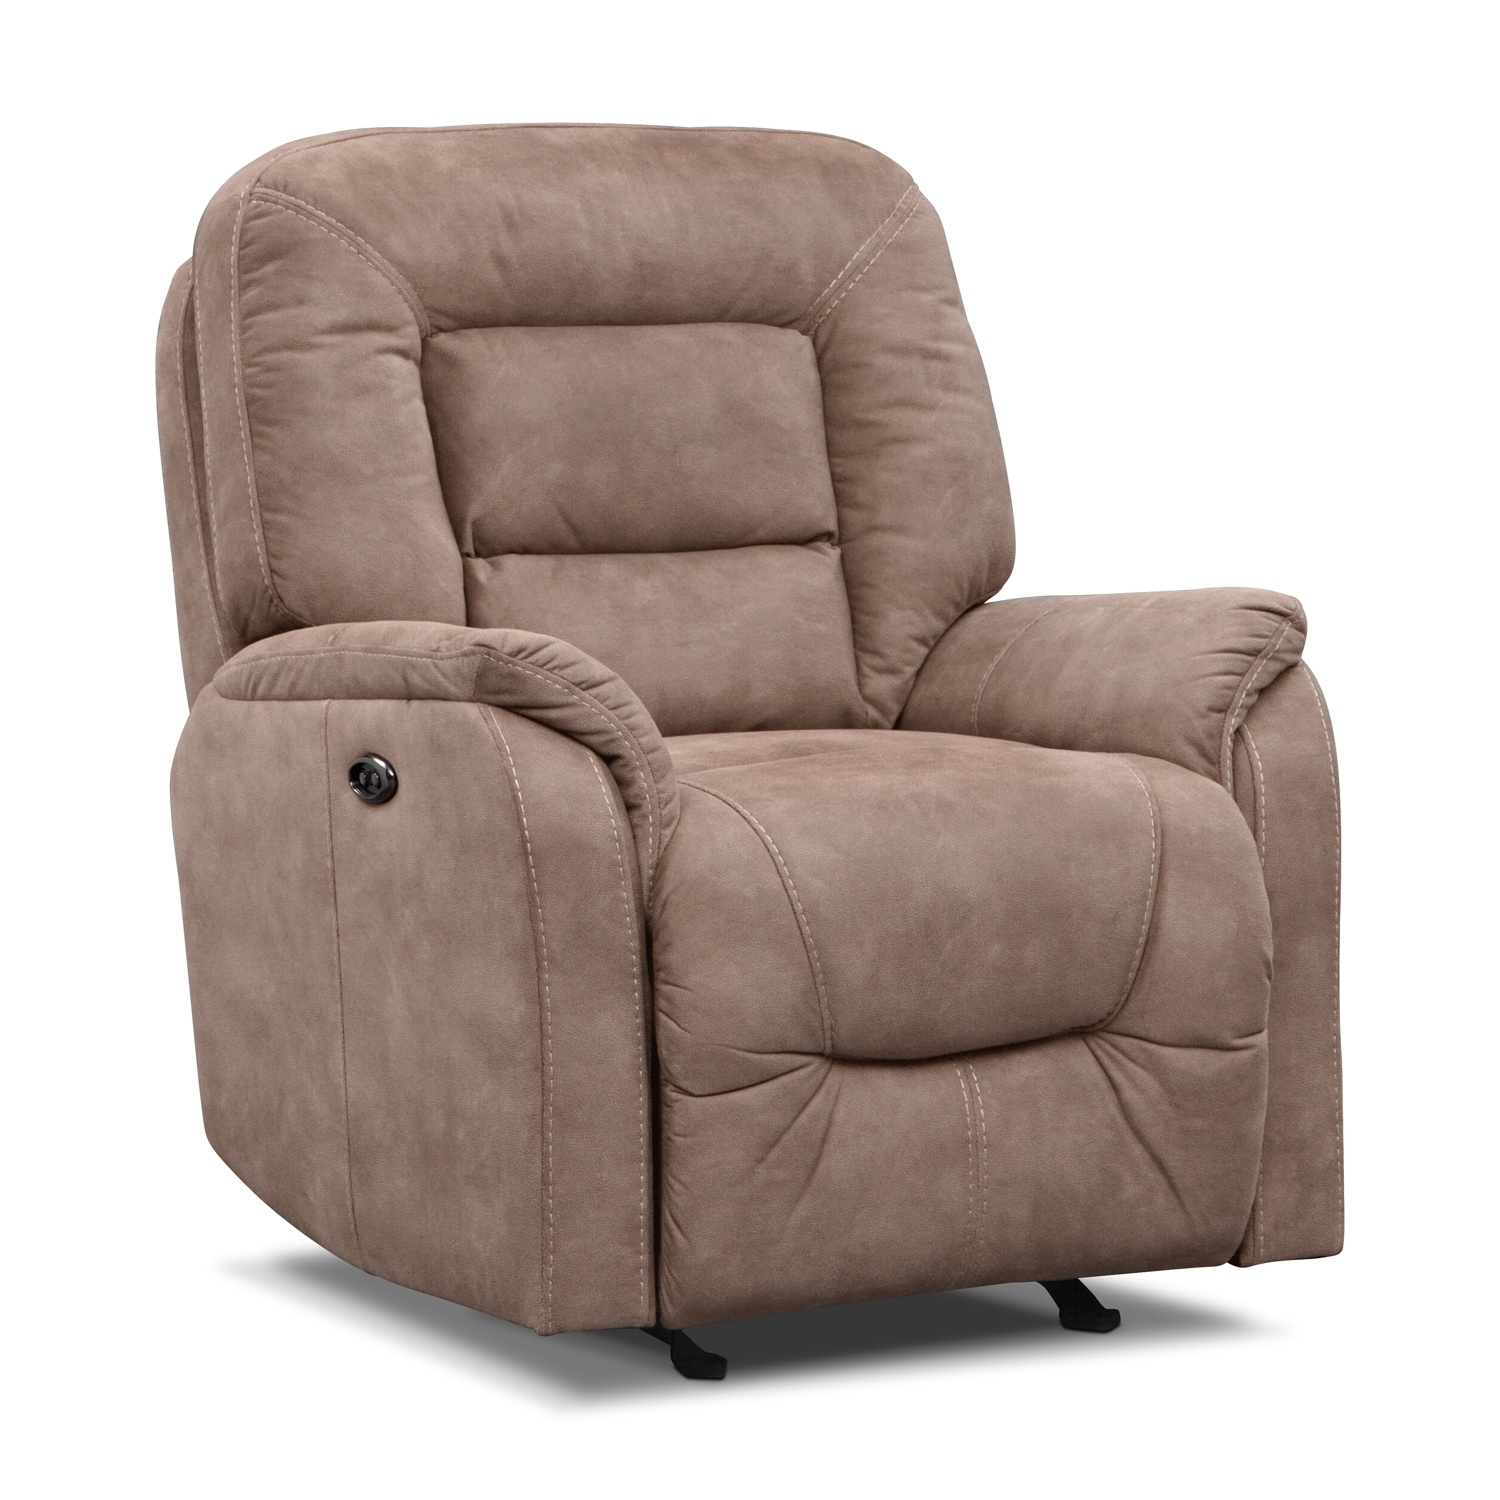 Darien Power Glider Recliner